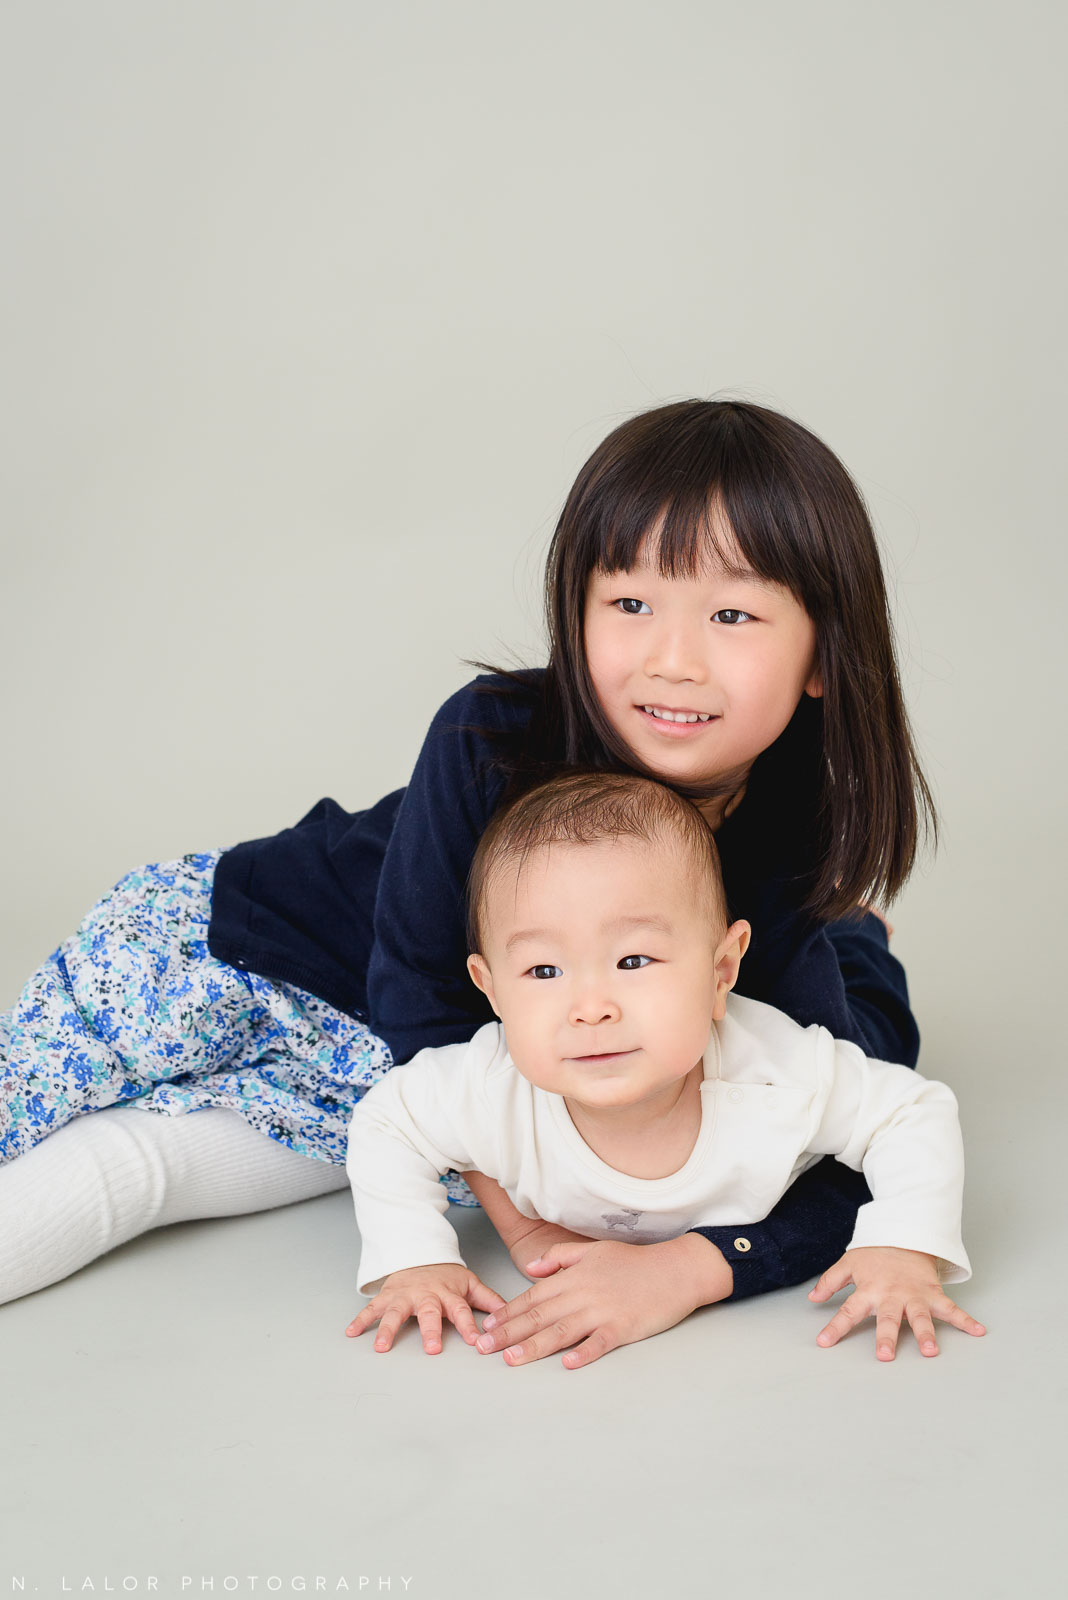 Brother and Sister. Greenwich CT Photo Studio family session by N. Lalor Photography.